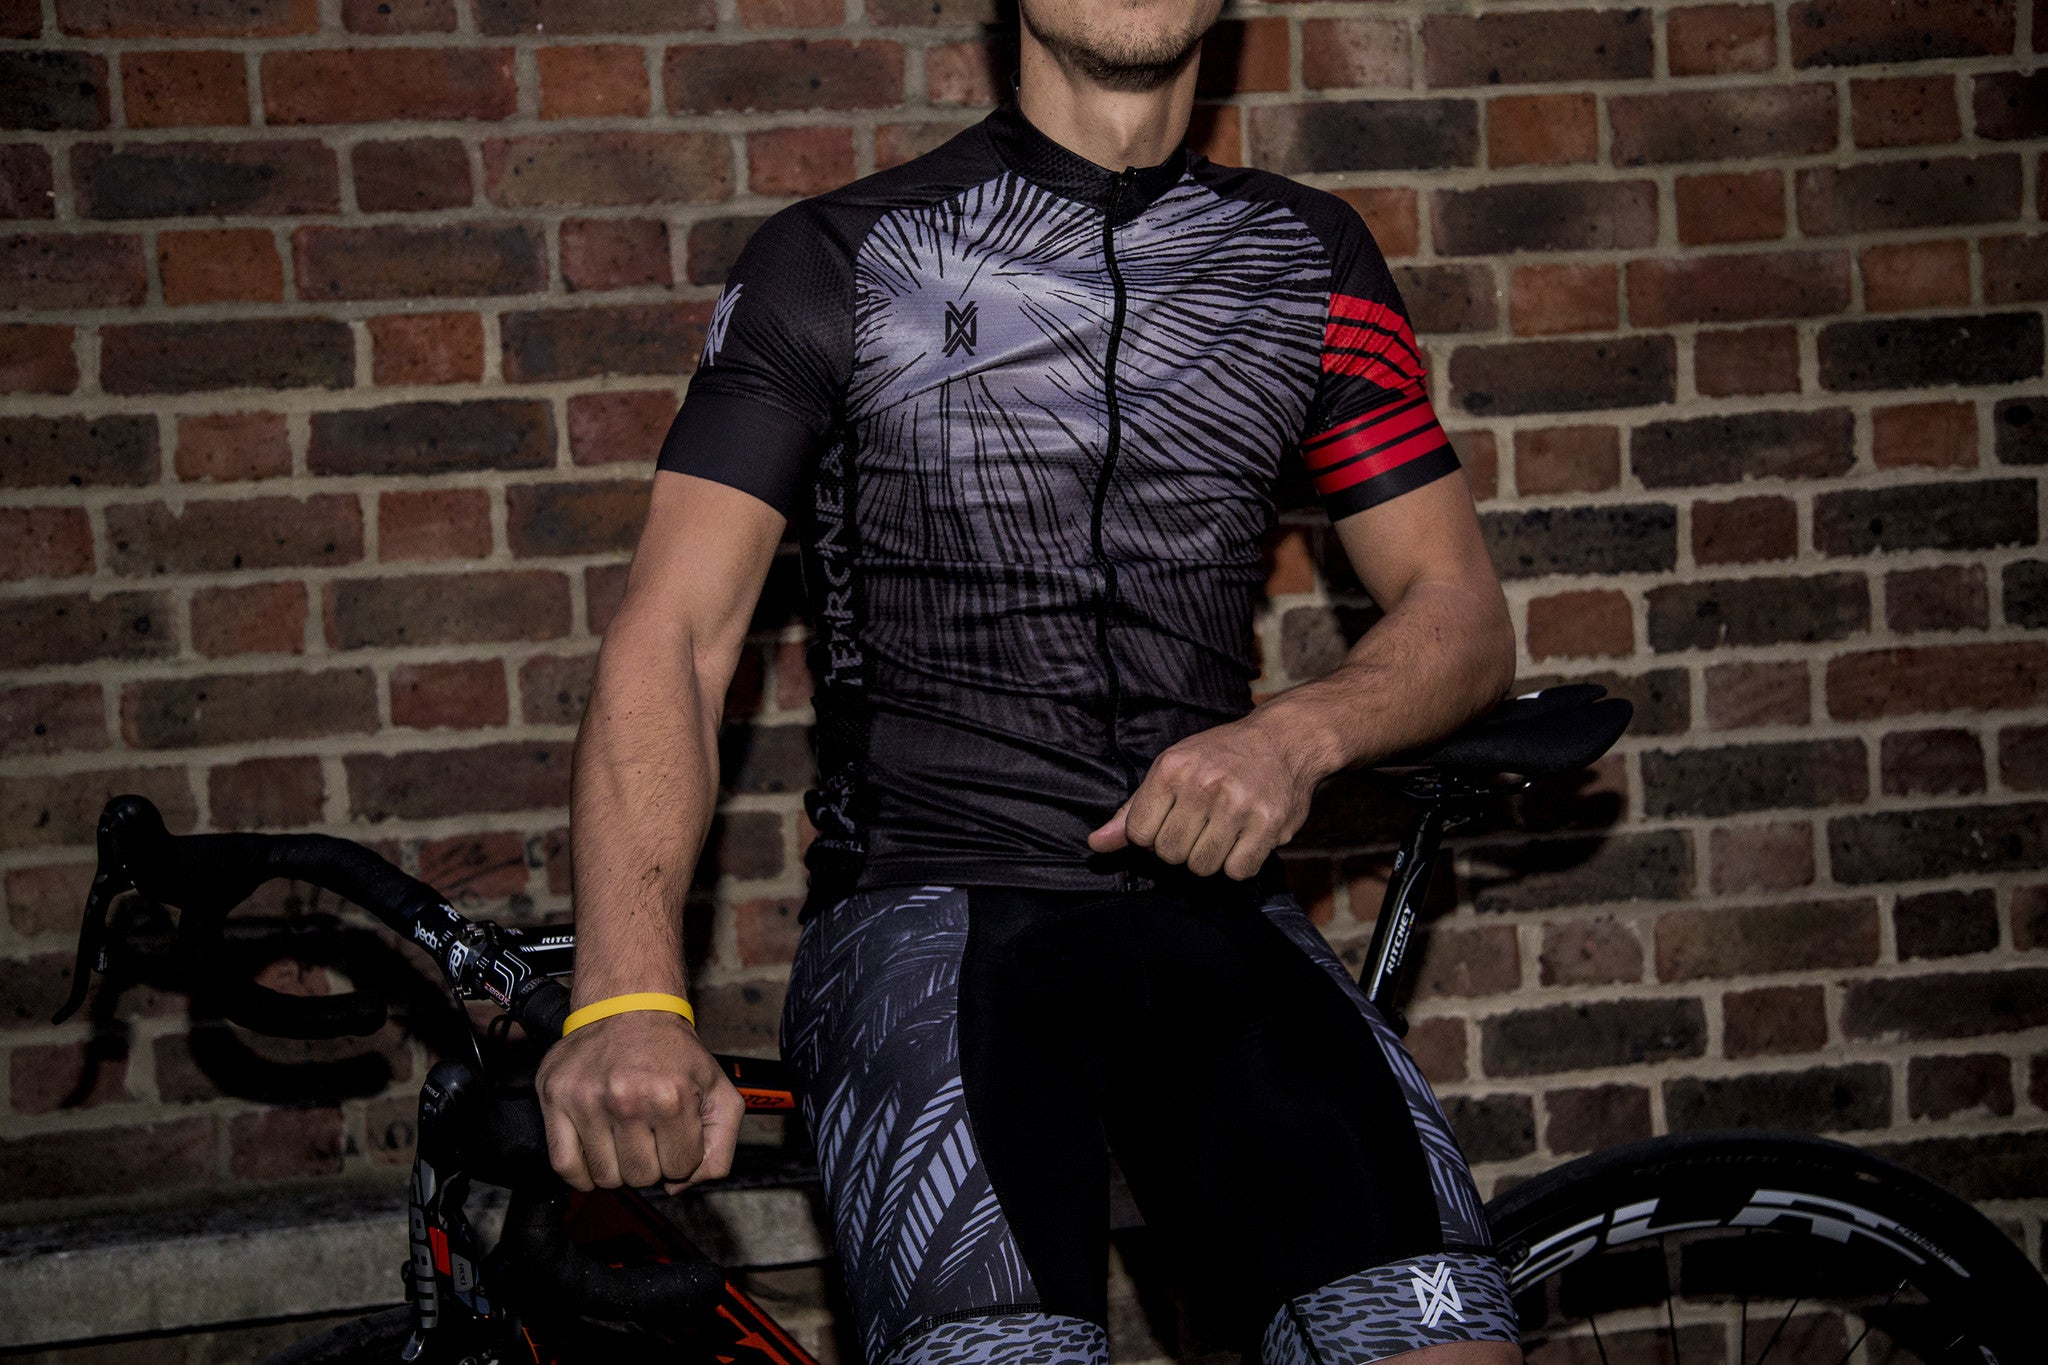 NVAYRK X KRAKEN Cycling Kit